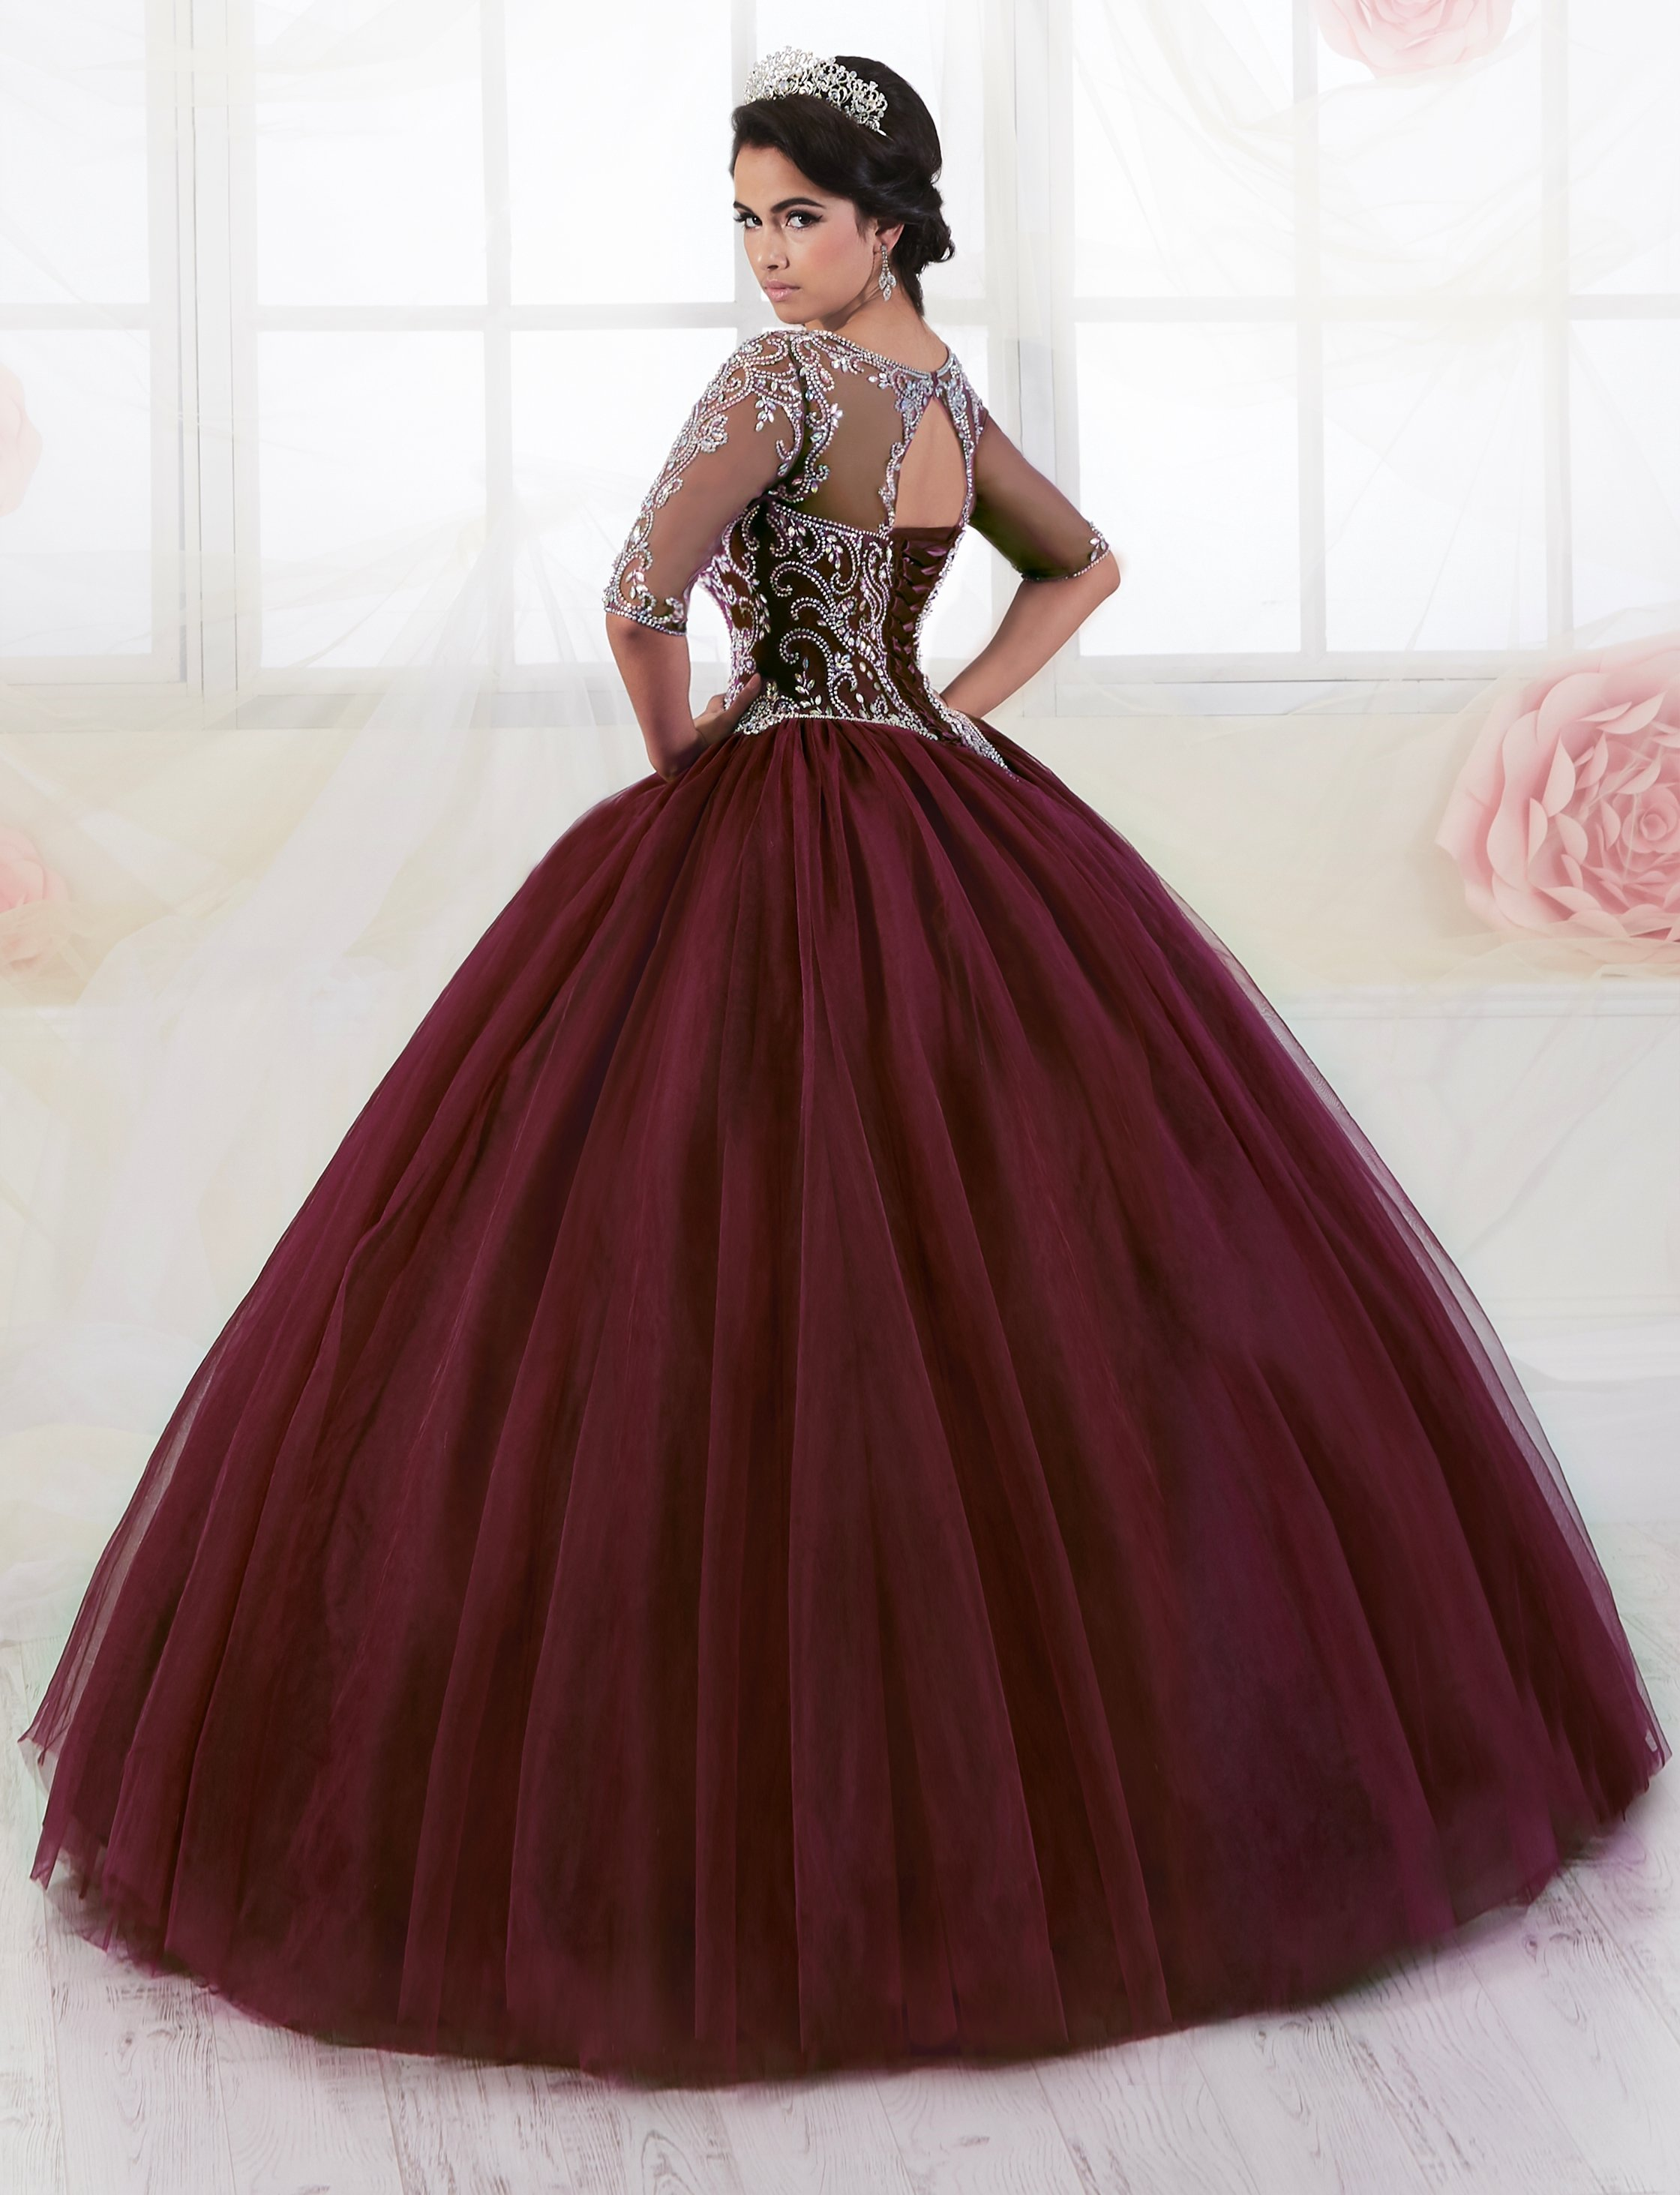 3b49312804d4 Long Sleeved Quinceanera Dress by Fiesta Gowns 56354 in 2019 | Xv ...